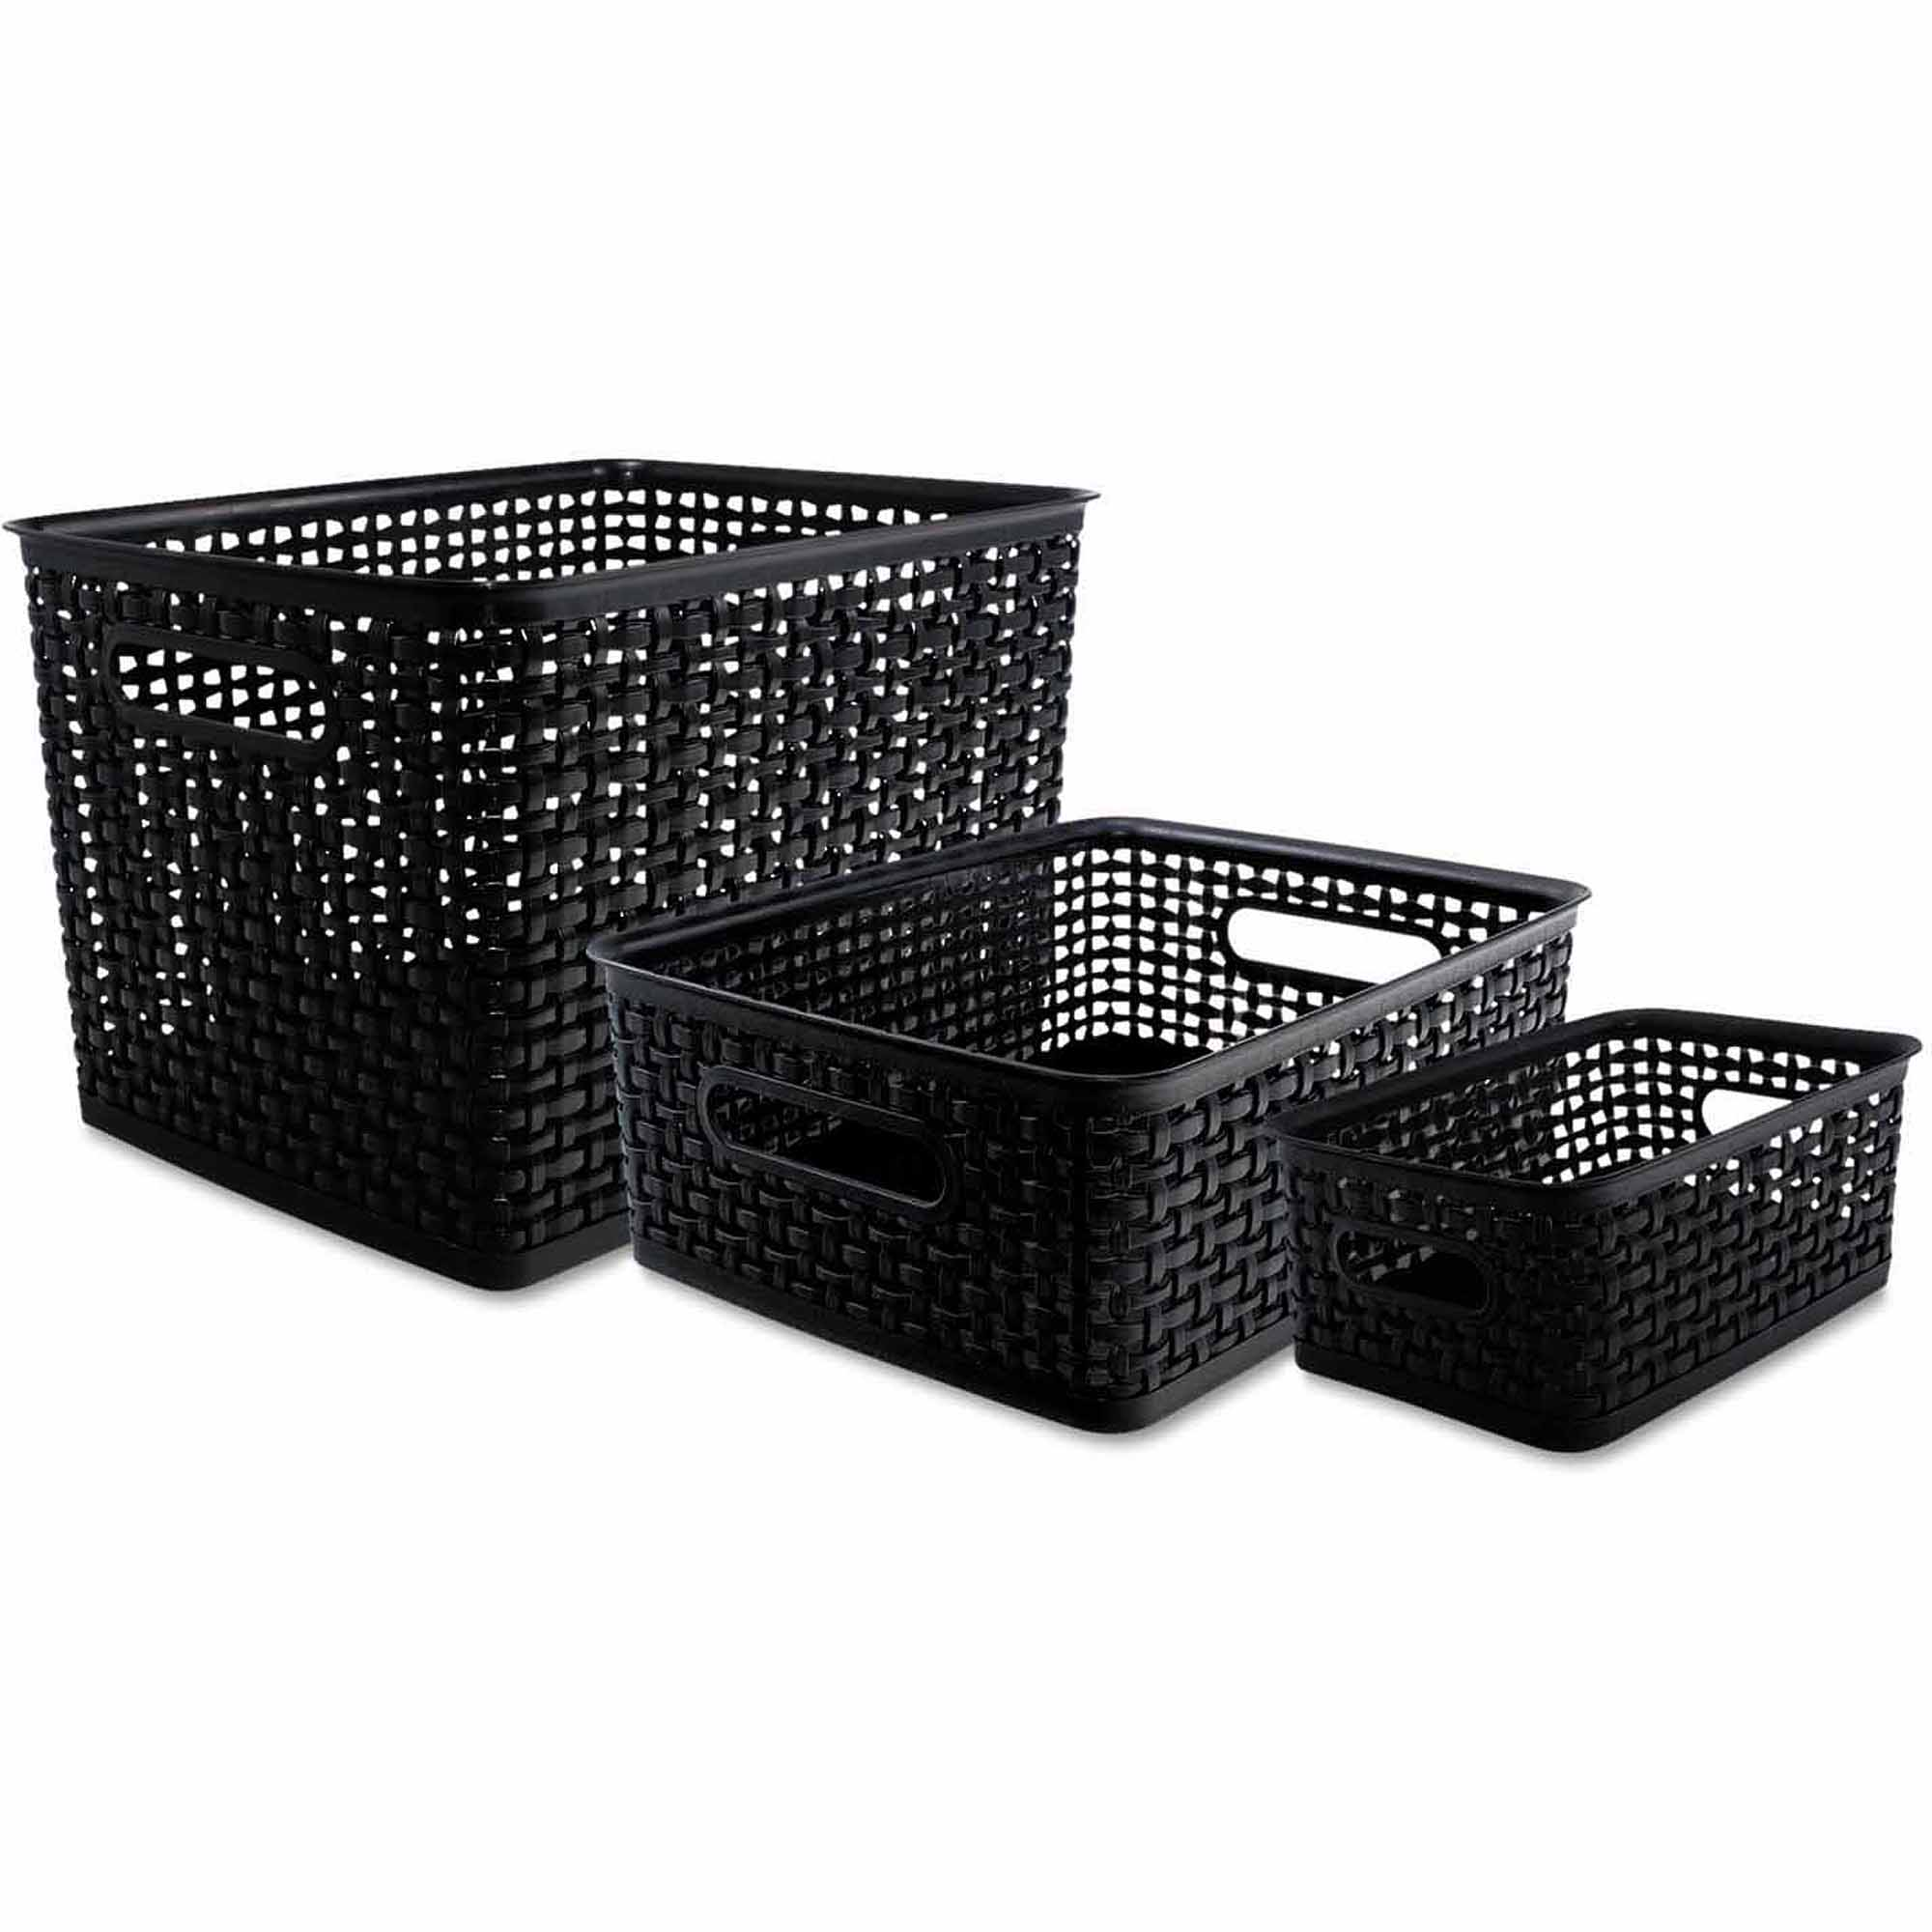 Advantus Weave Bins, Black, 3 Bins